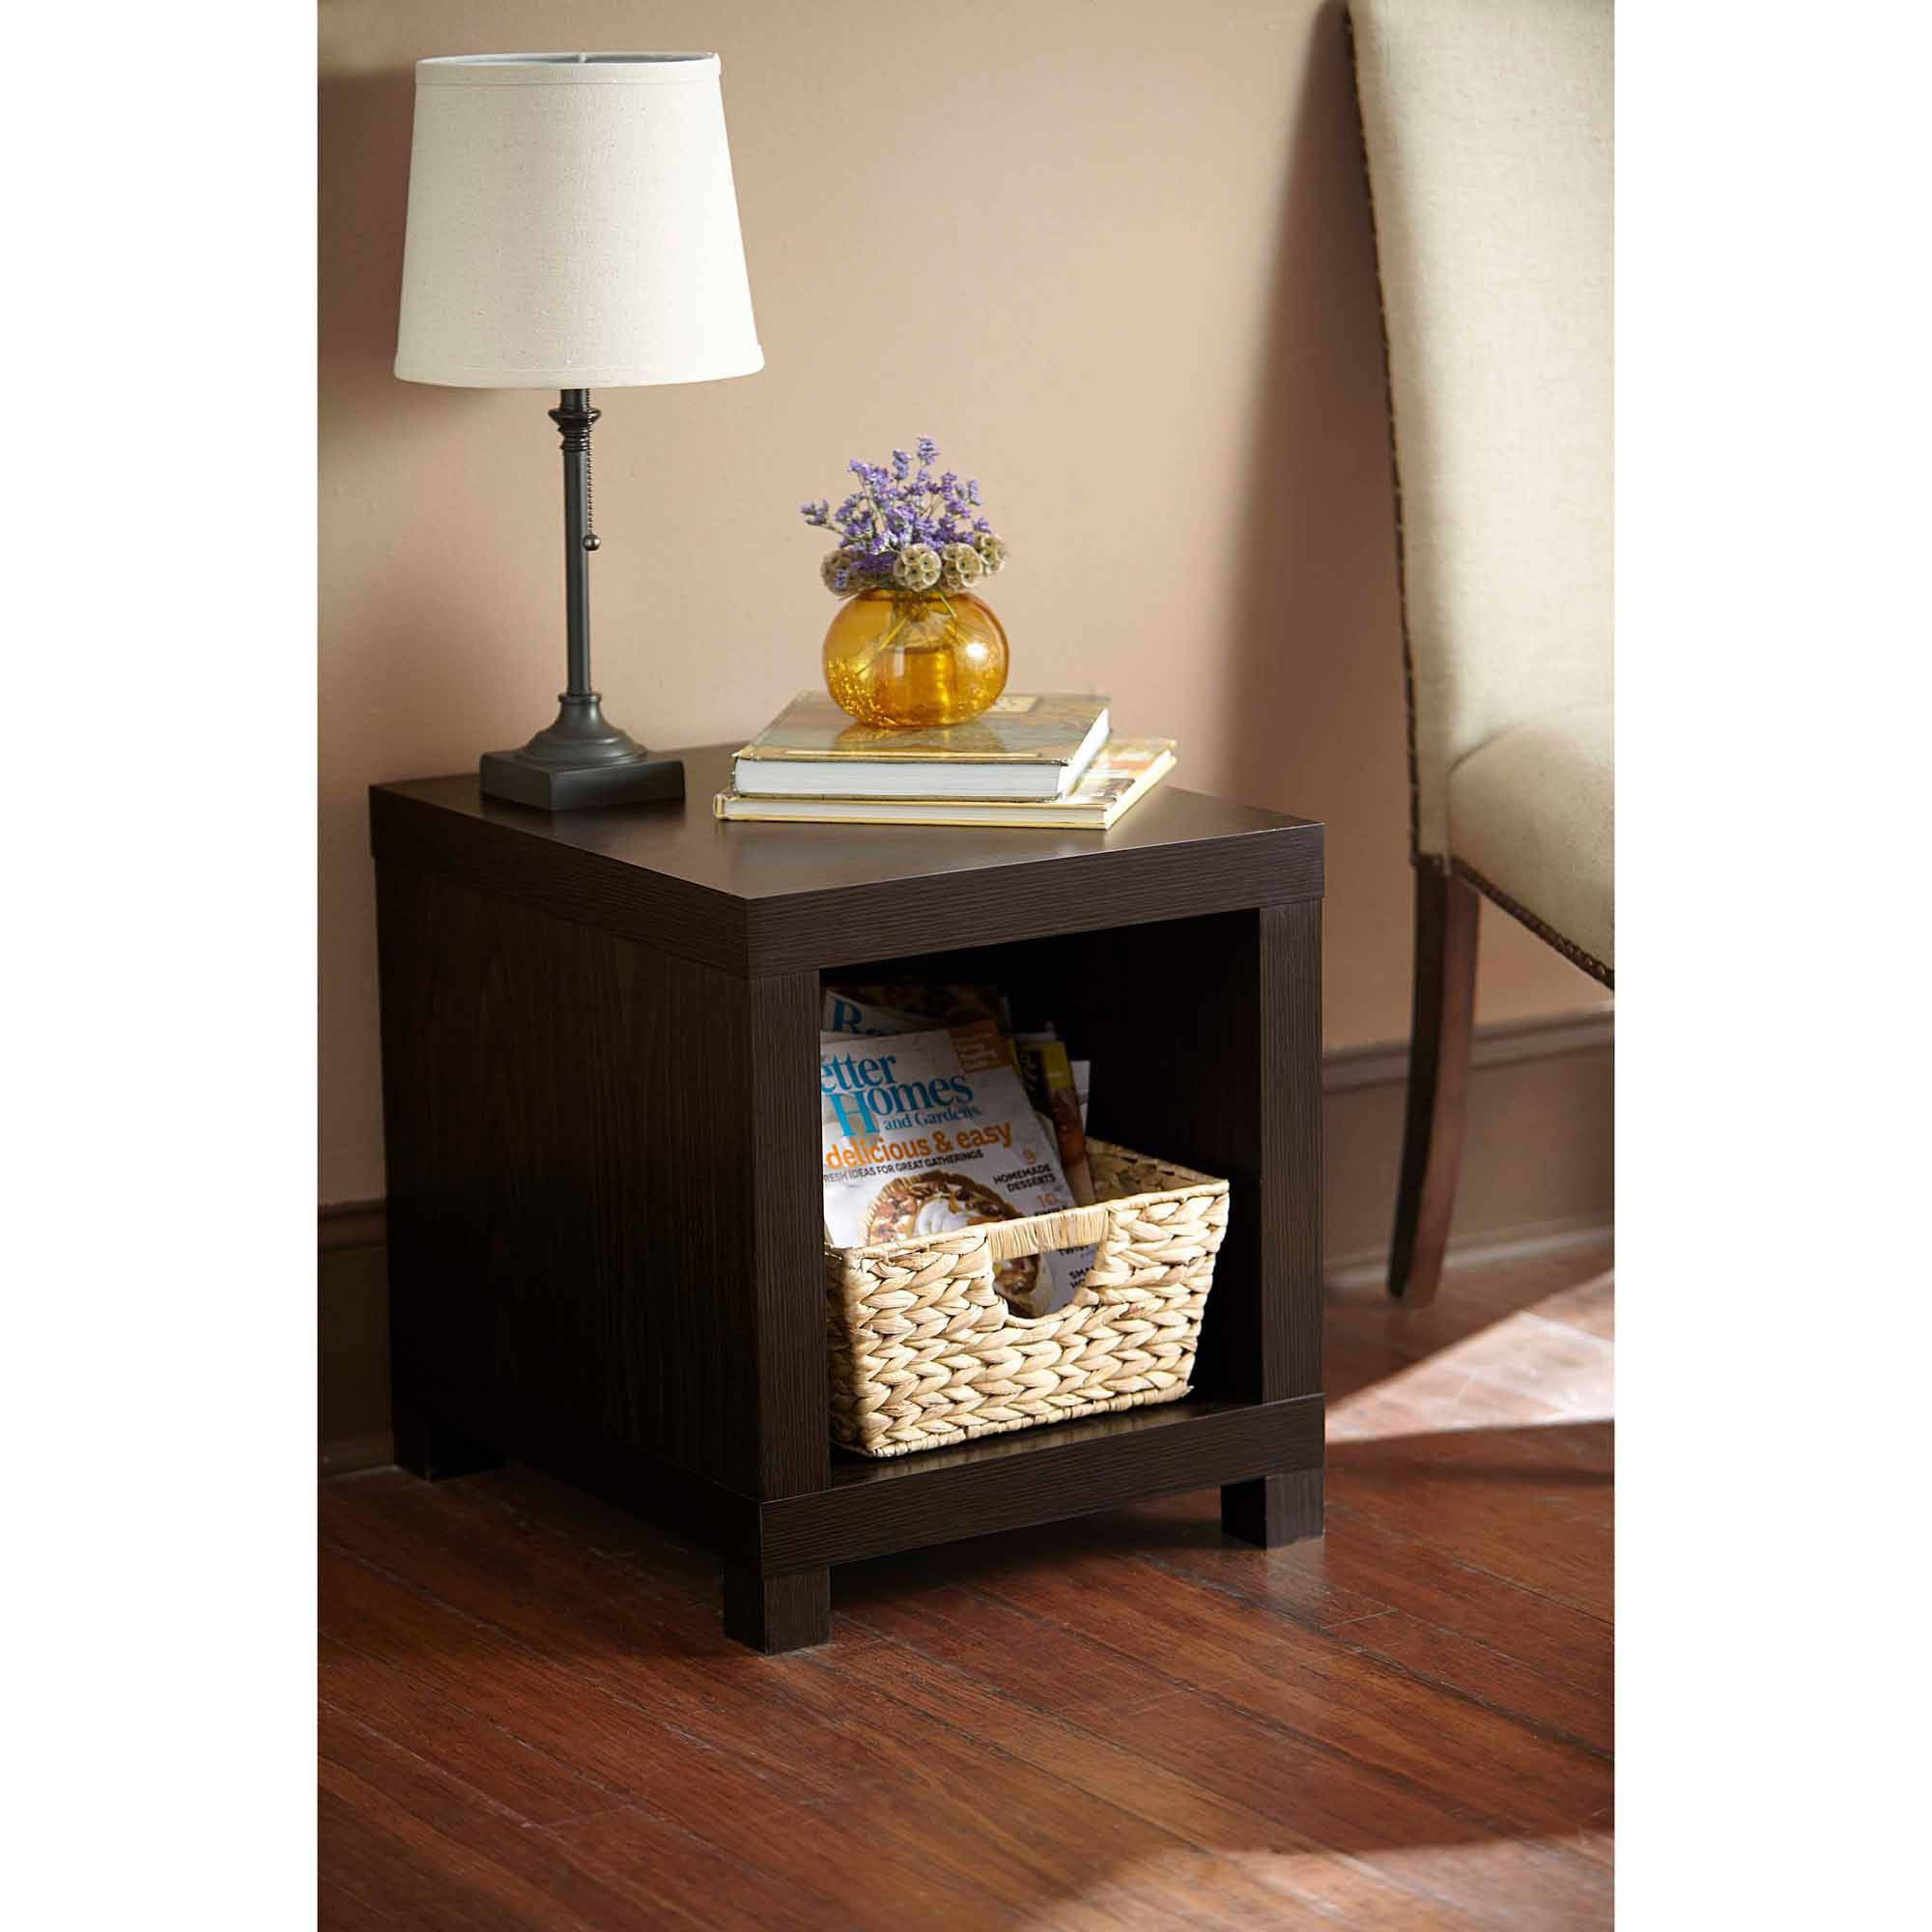 better homes gardens accent table multiple colors room essentials assembly instructions dining set with bench mirrored entry brown wicker patio side pier imports end tables thin